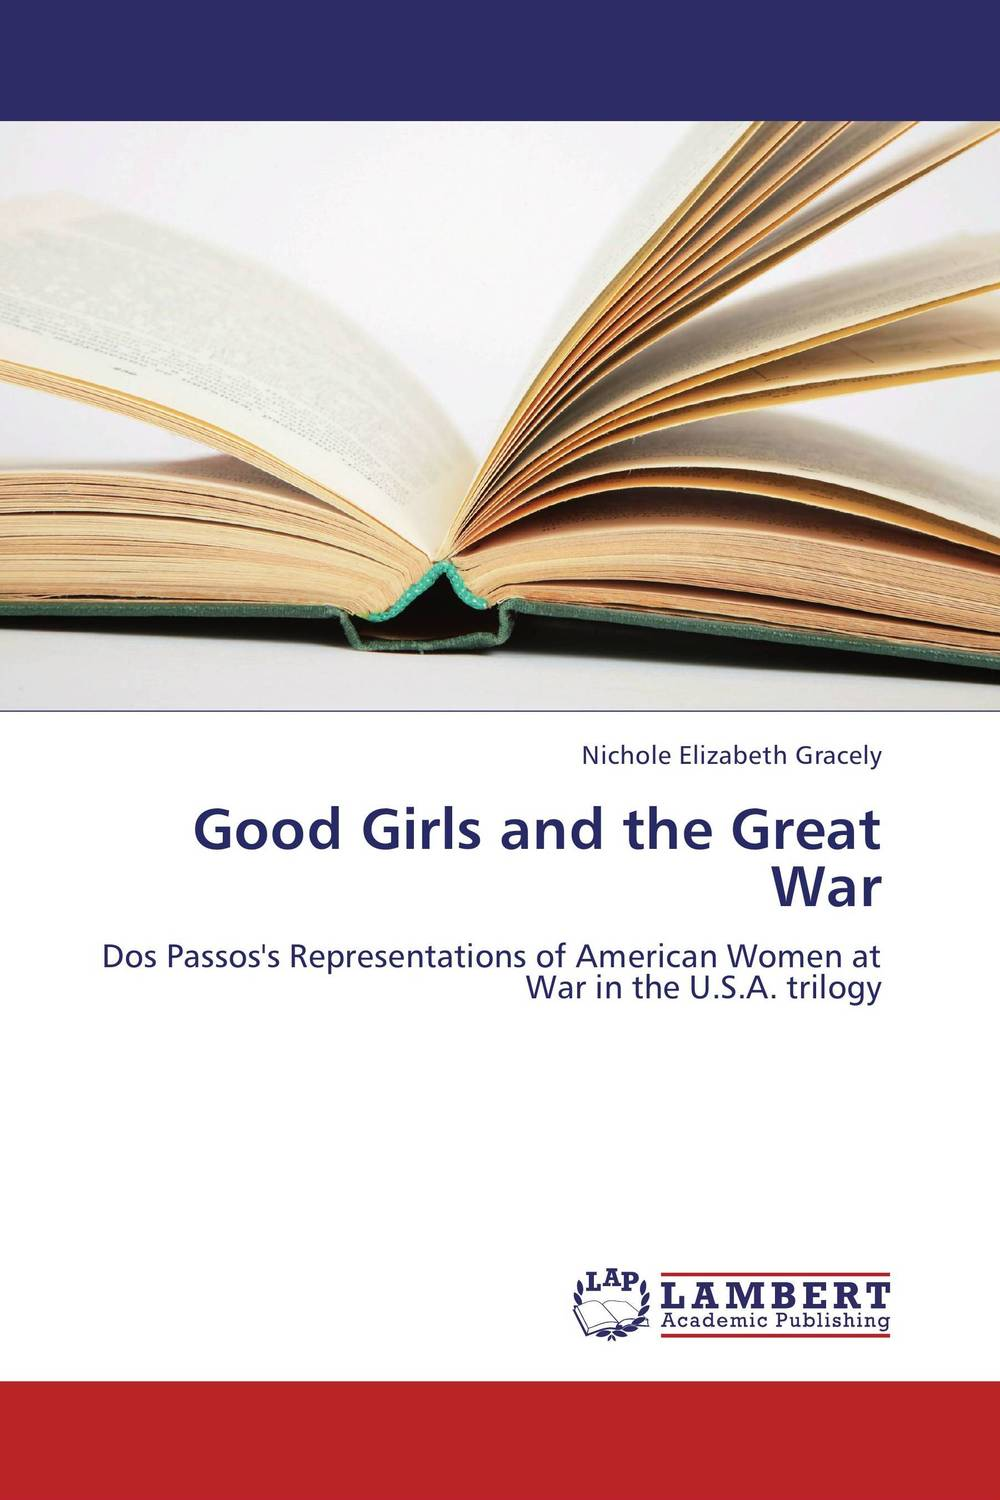 Good Girls and the Great War samuel richardson clarissa or the history of a young lady vol 8